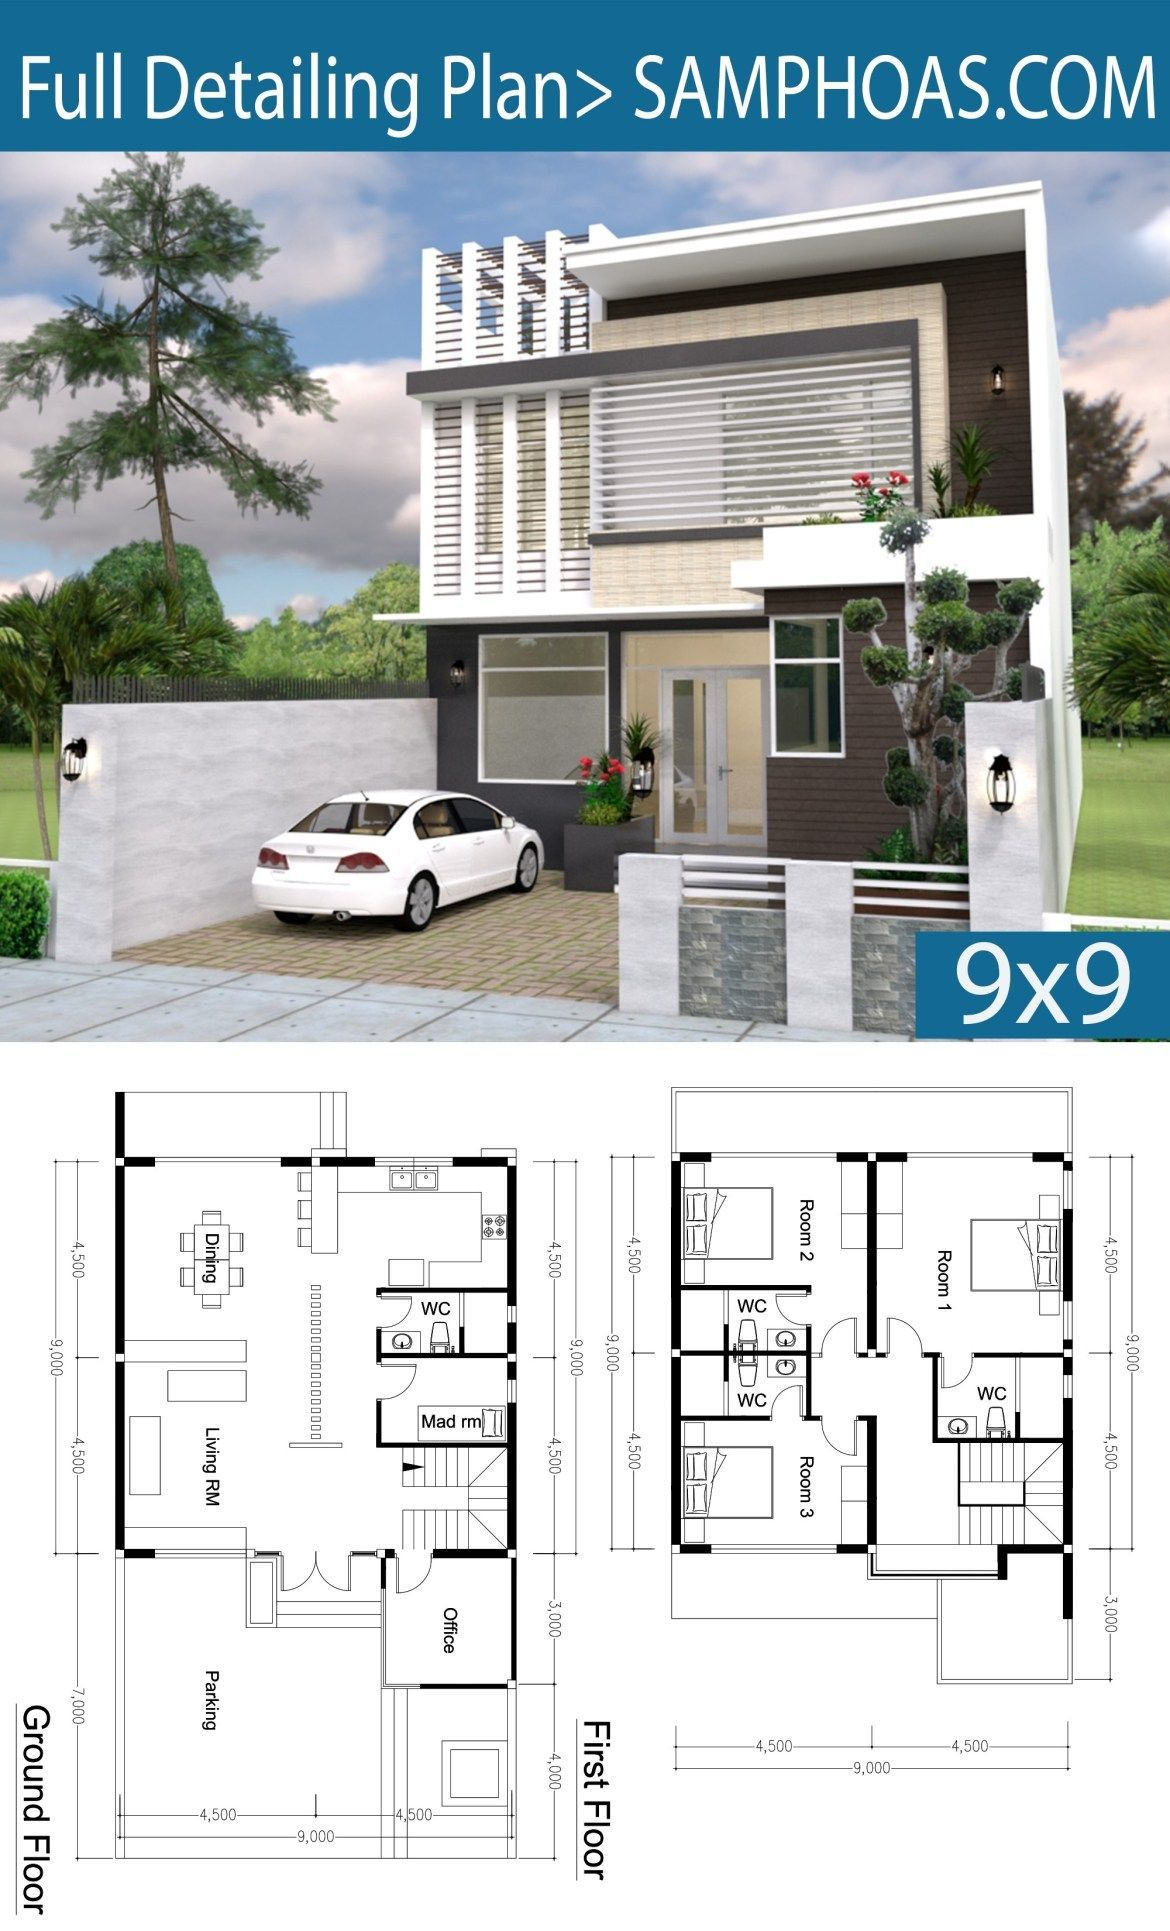 3 Bedroom Modern Home Plan 9x9m Samphoas Plansearch 9x9bedroomideas Modern House Plans Architectural House Plans Model House Plan